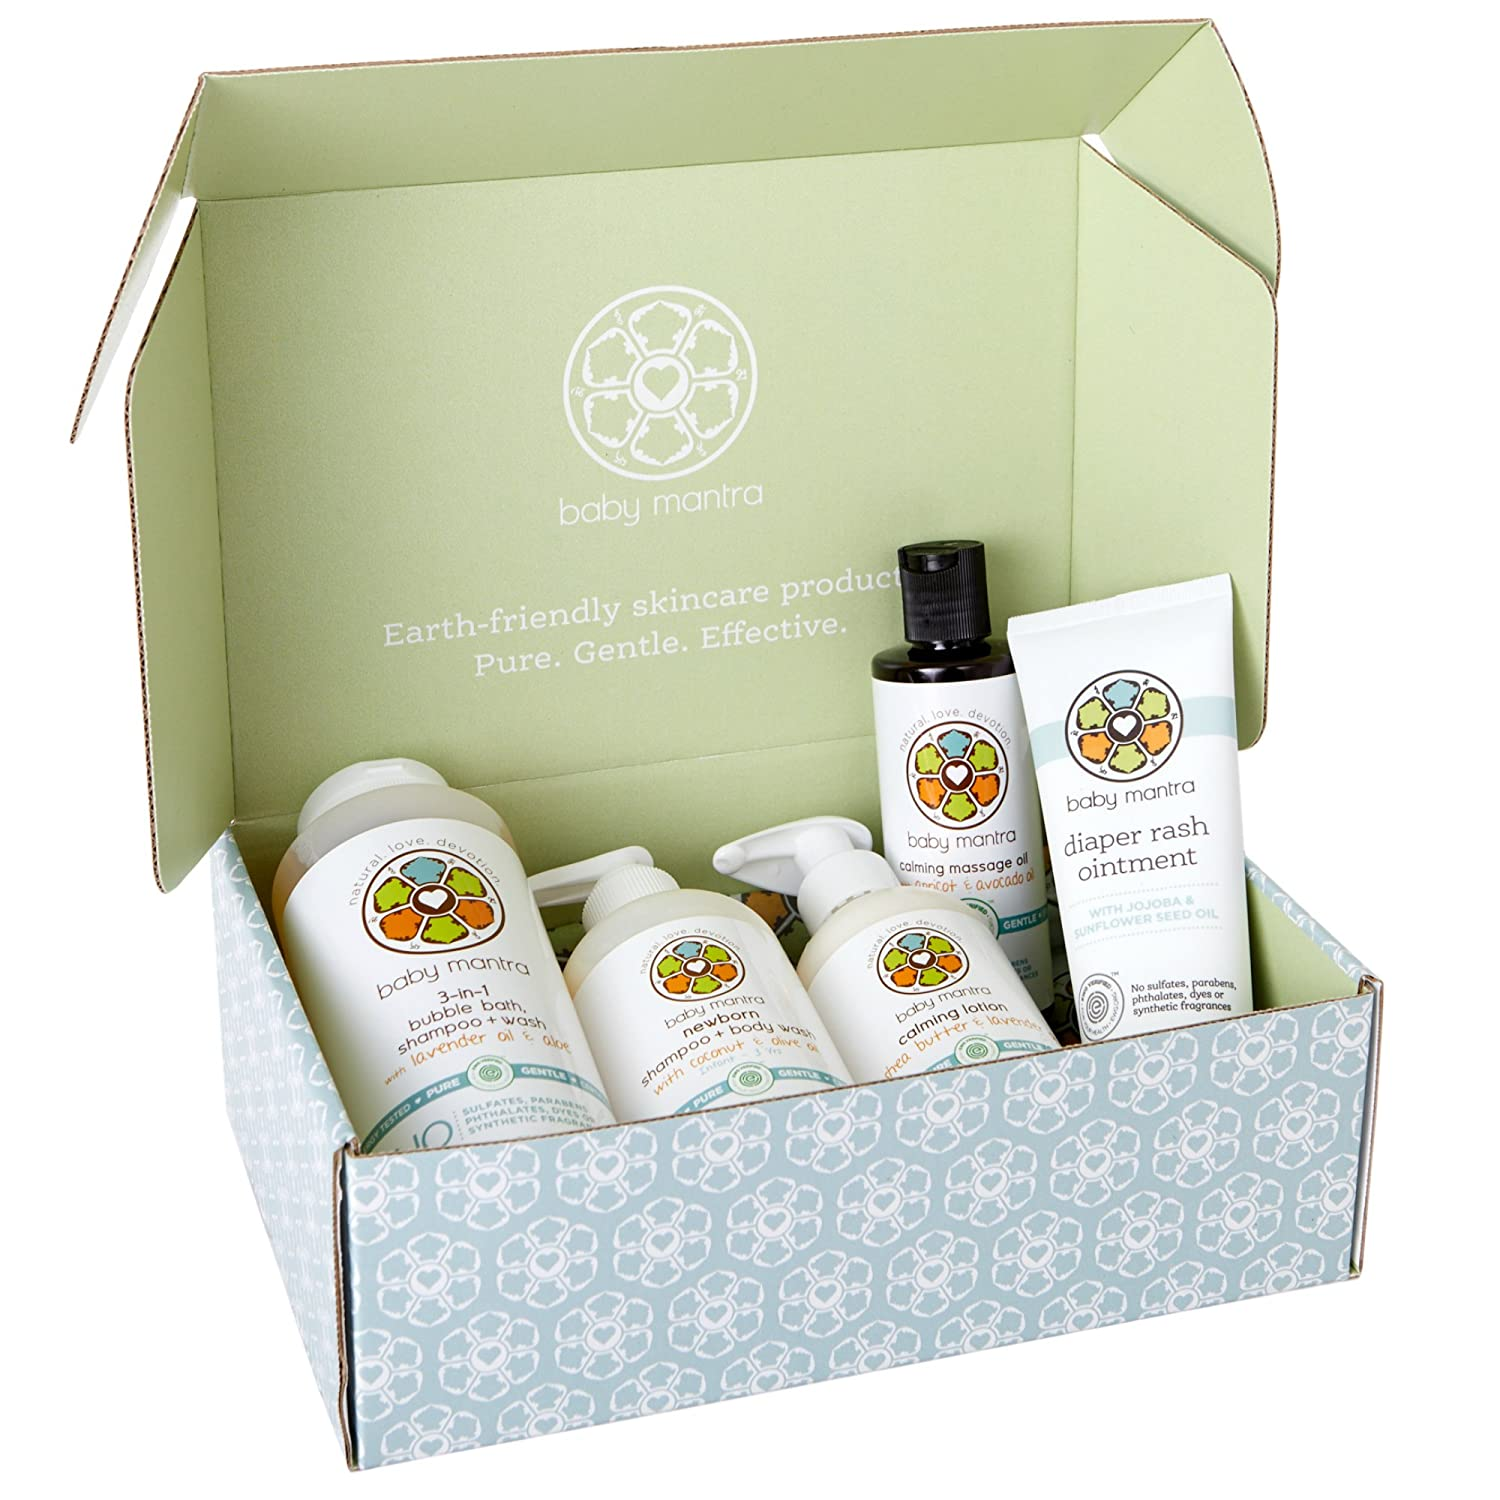 Baby Mantra Complete Newborn Gift Set, EWG Verified, Natural and Hypoallergenic Bath & Skin Care Products for Babies & Kids, Perfect for Baby Shower (Bundle of Joy Gift Set)